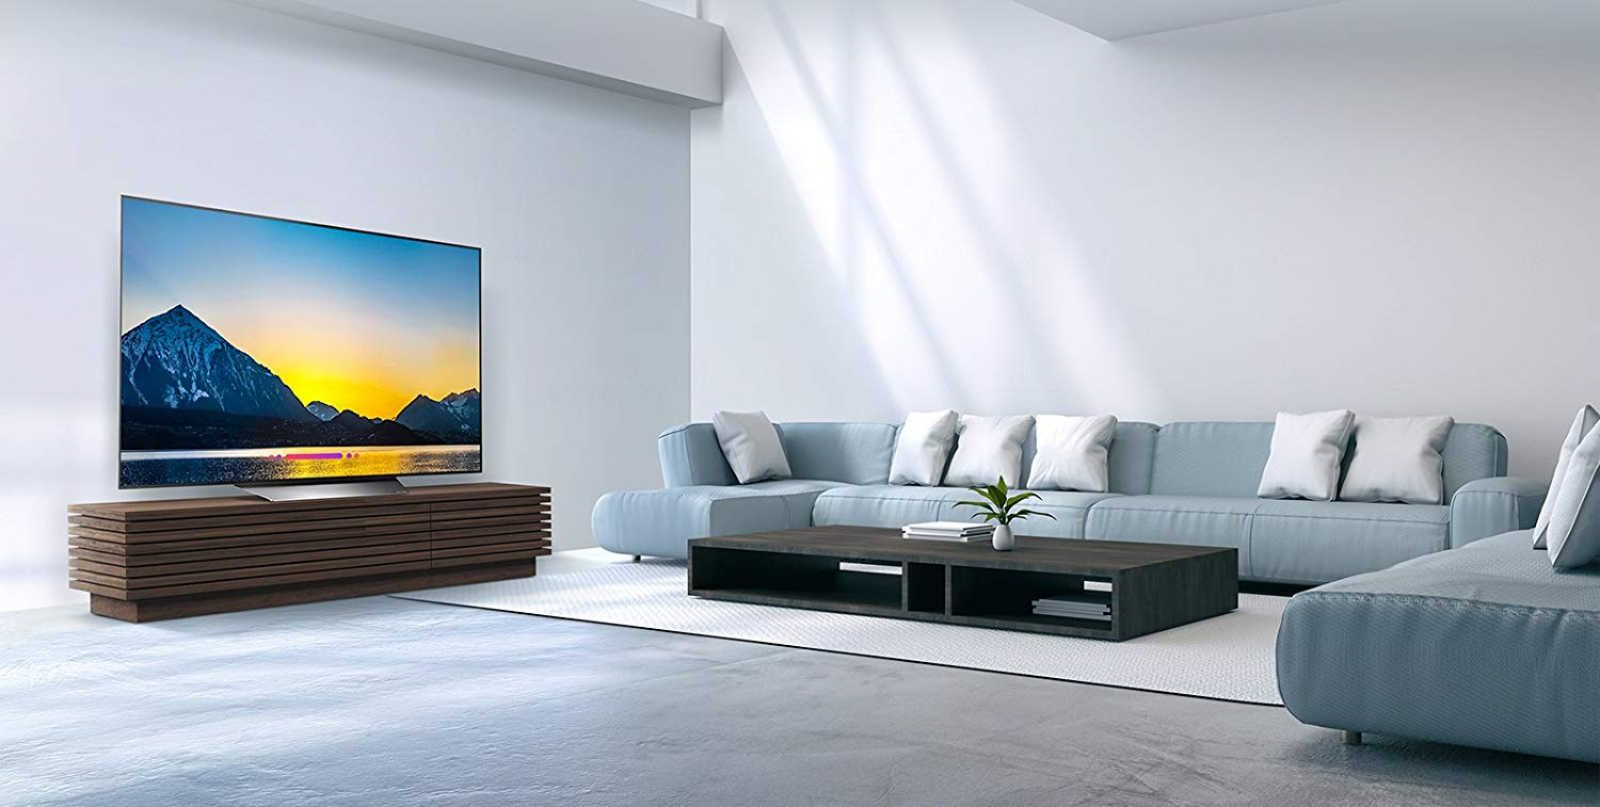 Lg Drops The Prices Of Its Most Popular Oled Tvs In Time For Super